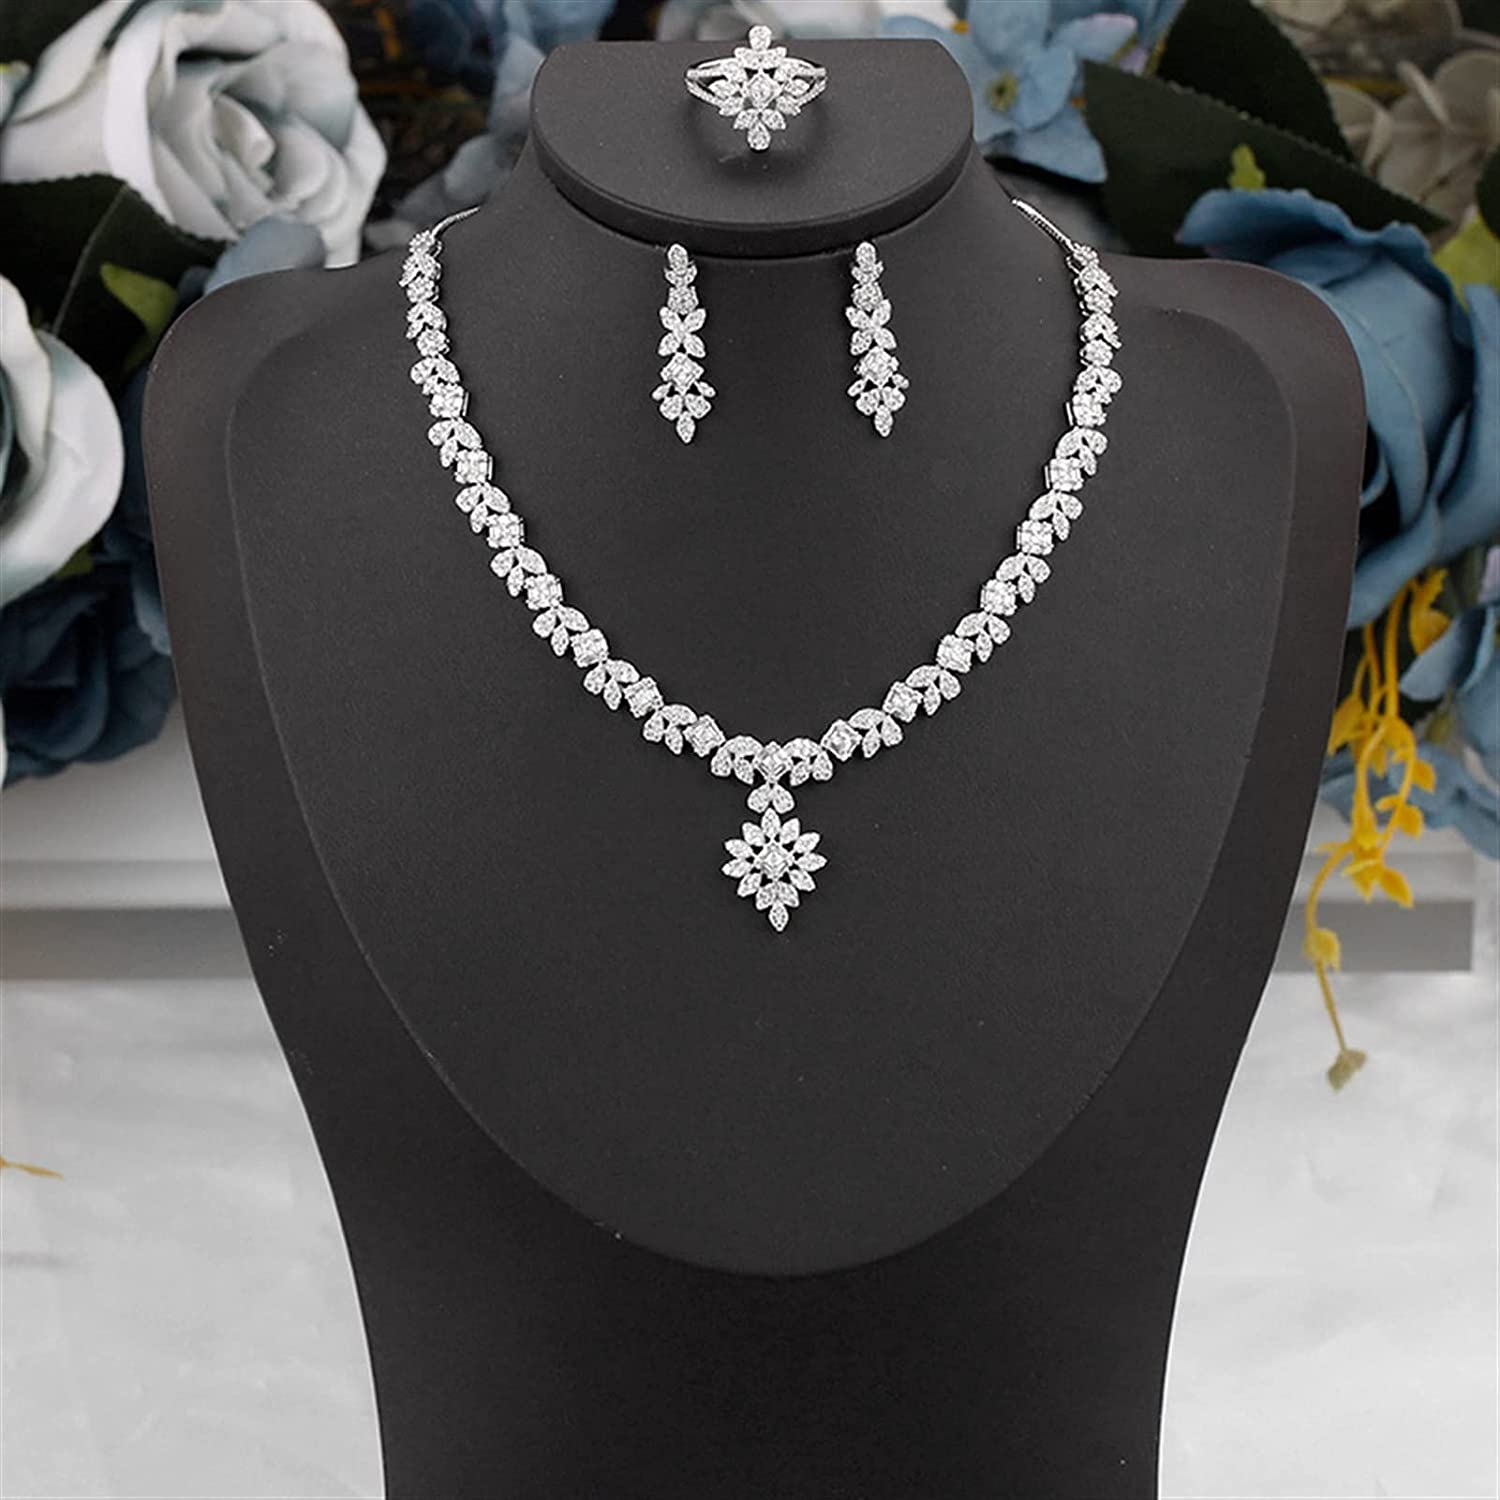 Excellence SYXMSM Jewellery Set 4 PCS for Jewelry Direct stock discount Wedding Engagement Cu